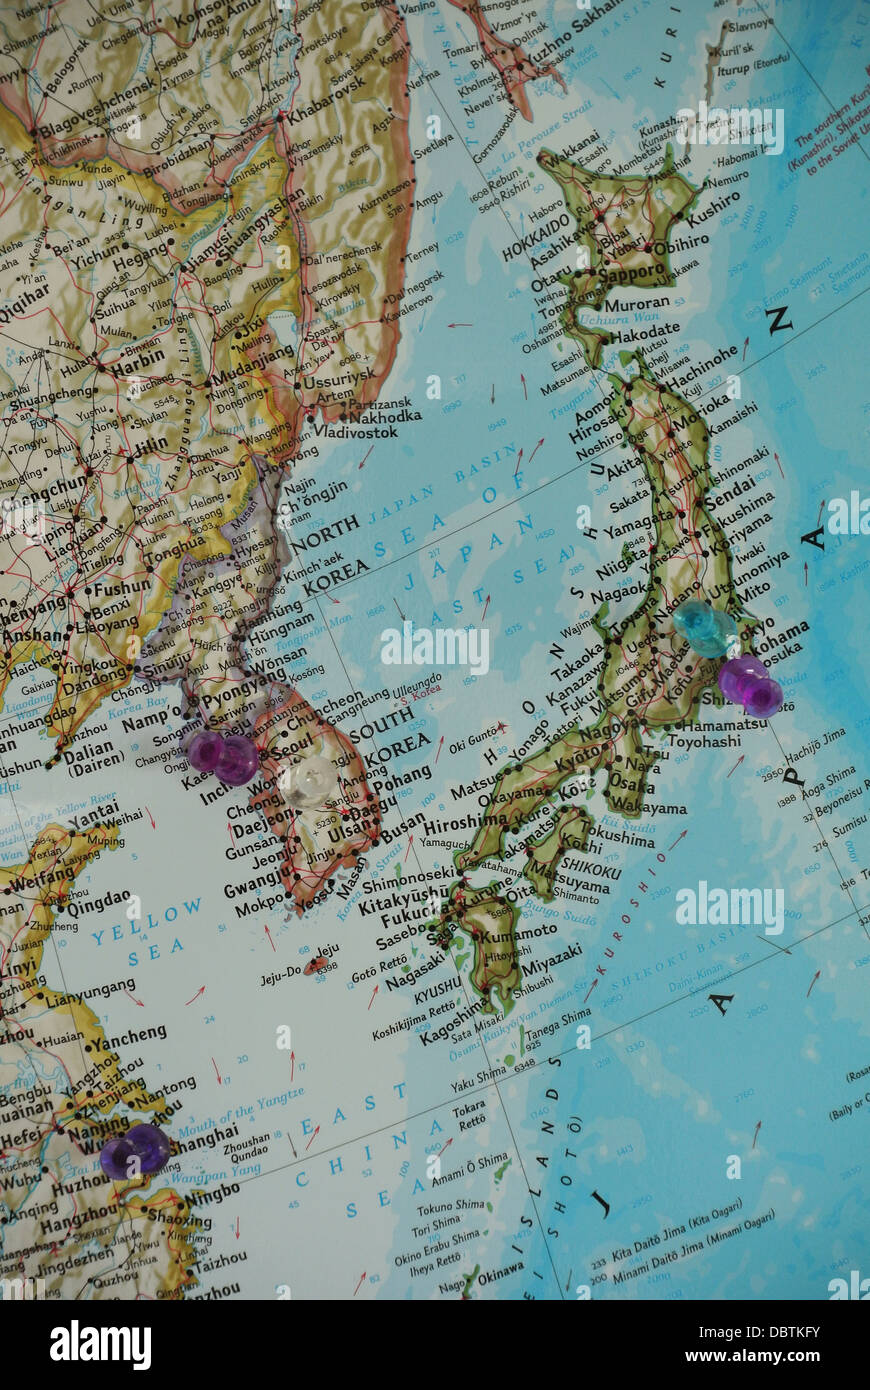 A Map Of Asia With Thumbtacks Marking Places In Korea Japan And - Huaian map